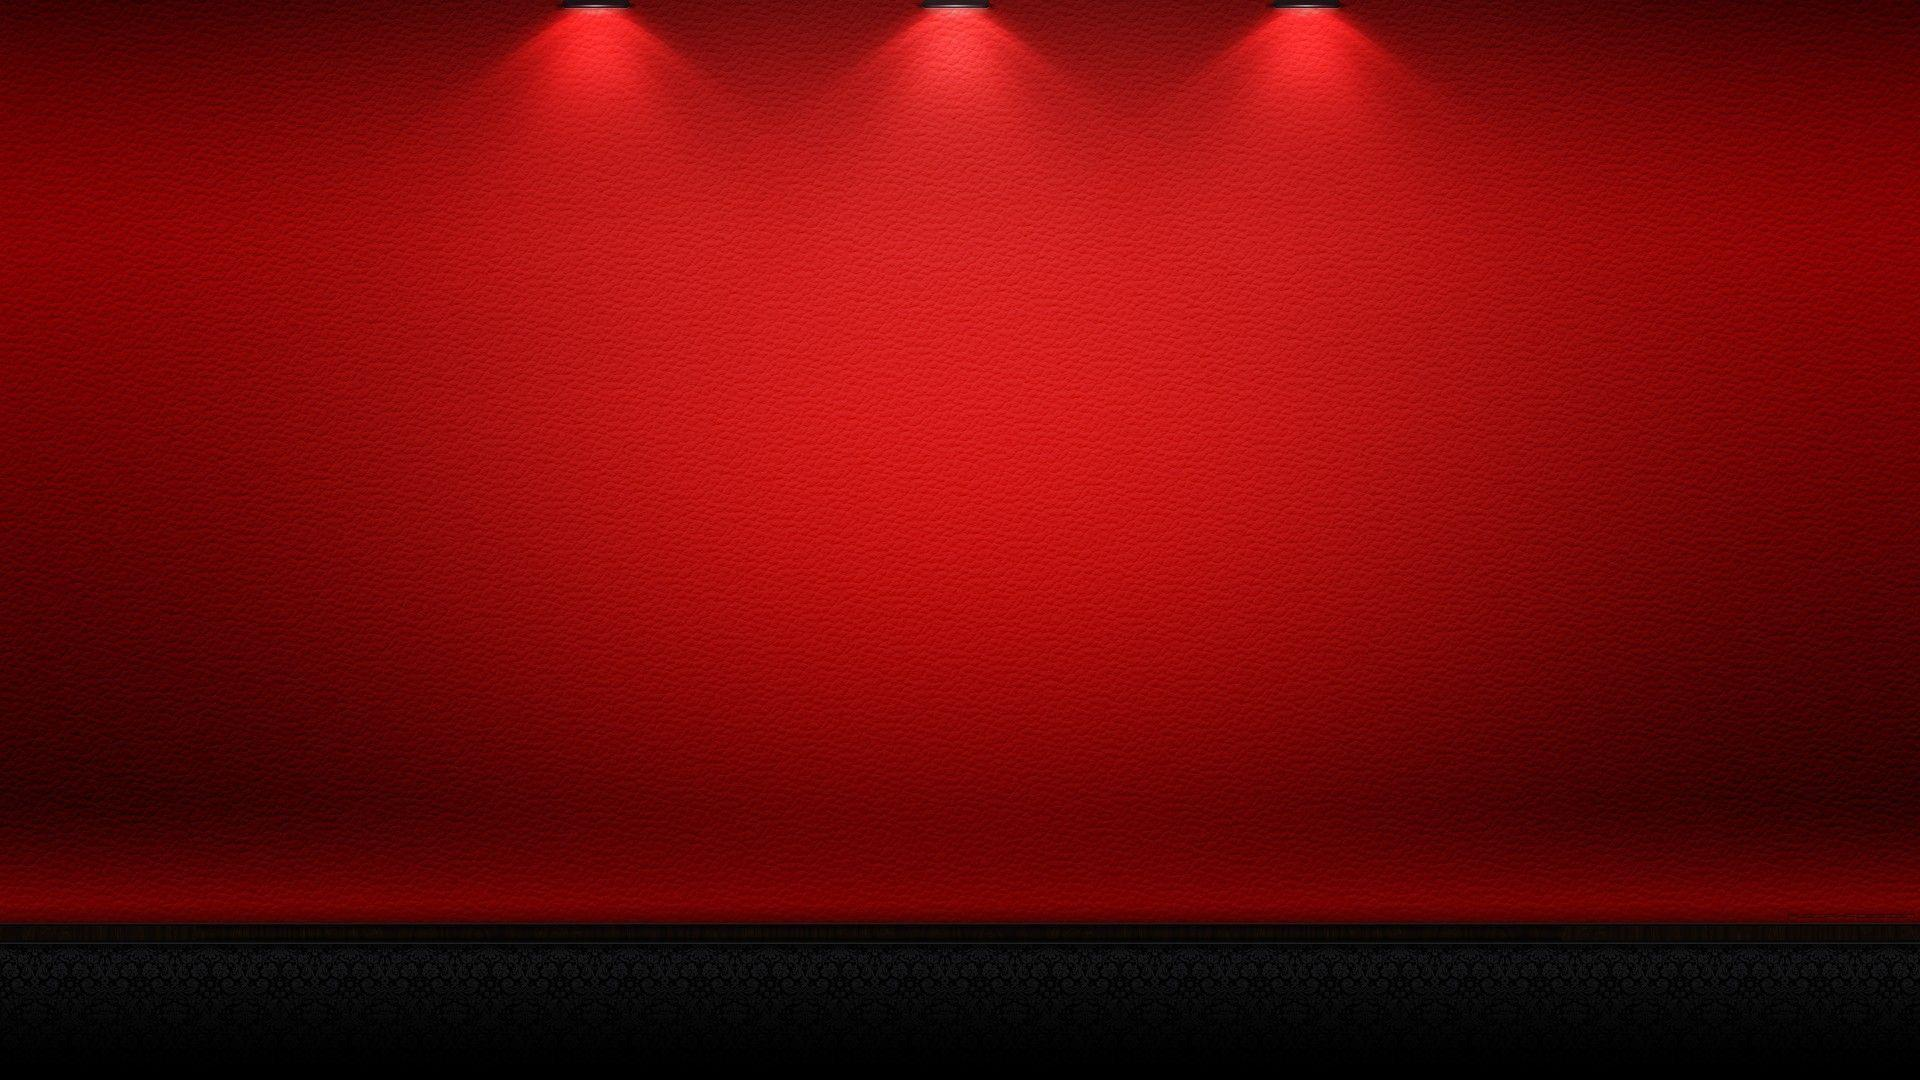 red backgrounds wallpapers wallpaper cave